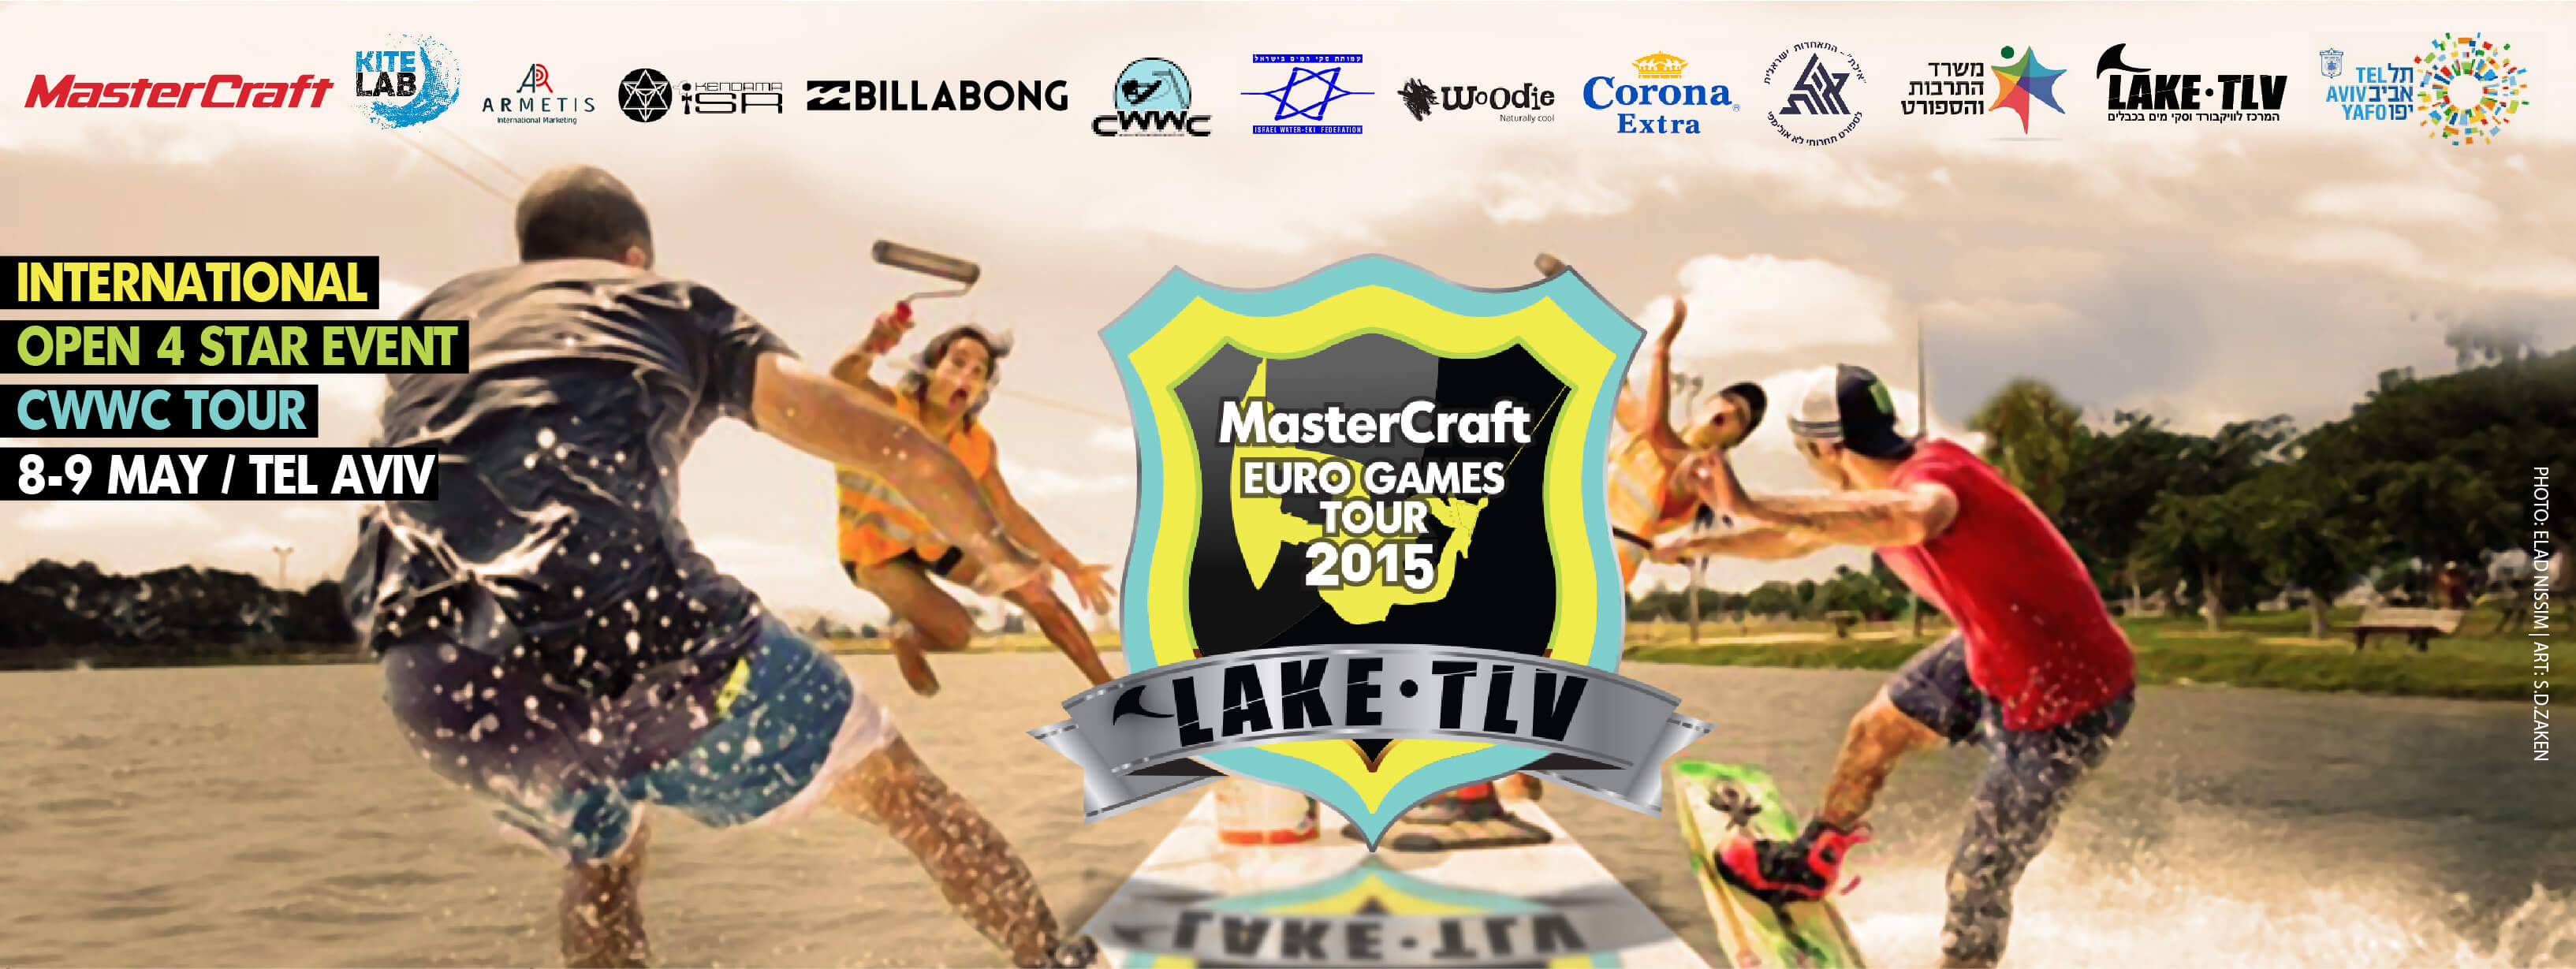 MasterCraft Pro tourALL LOGOS facebook_EVENT COVER